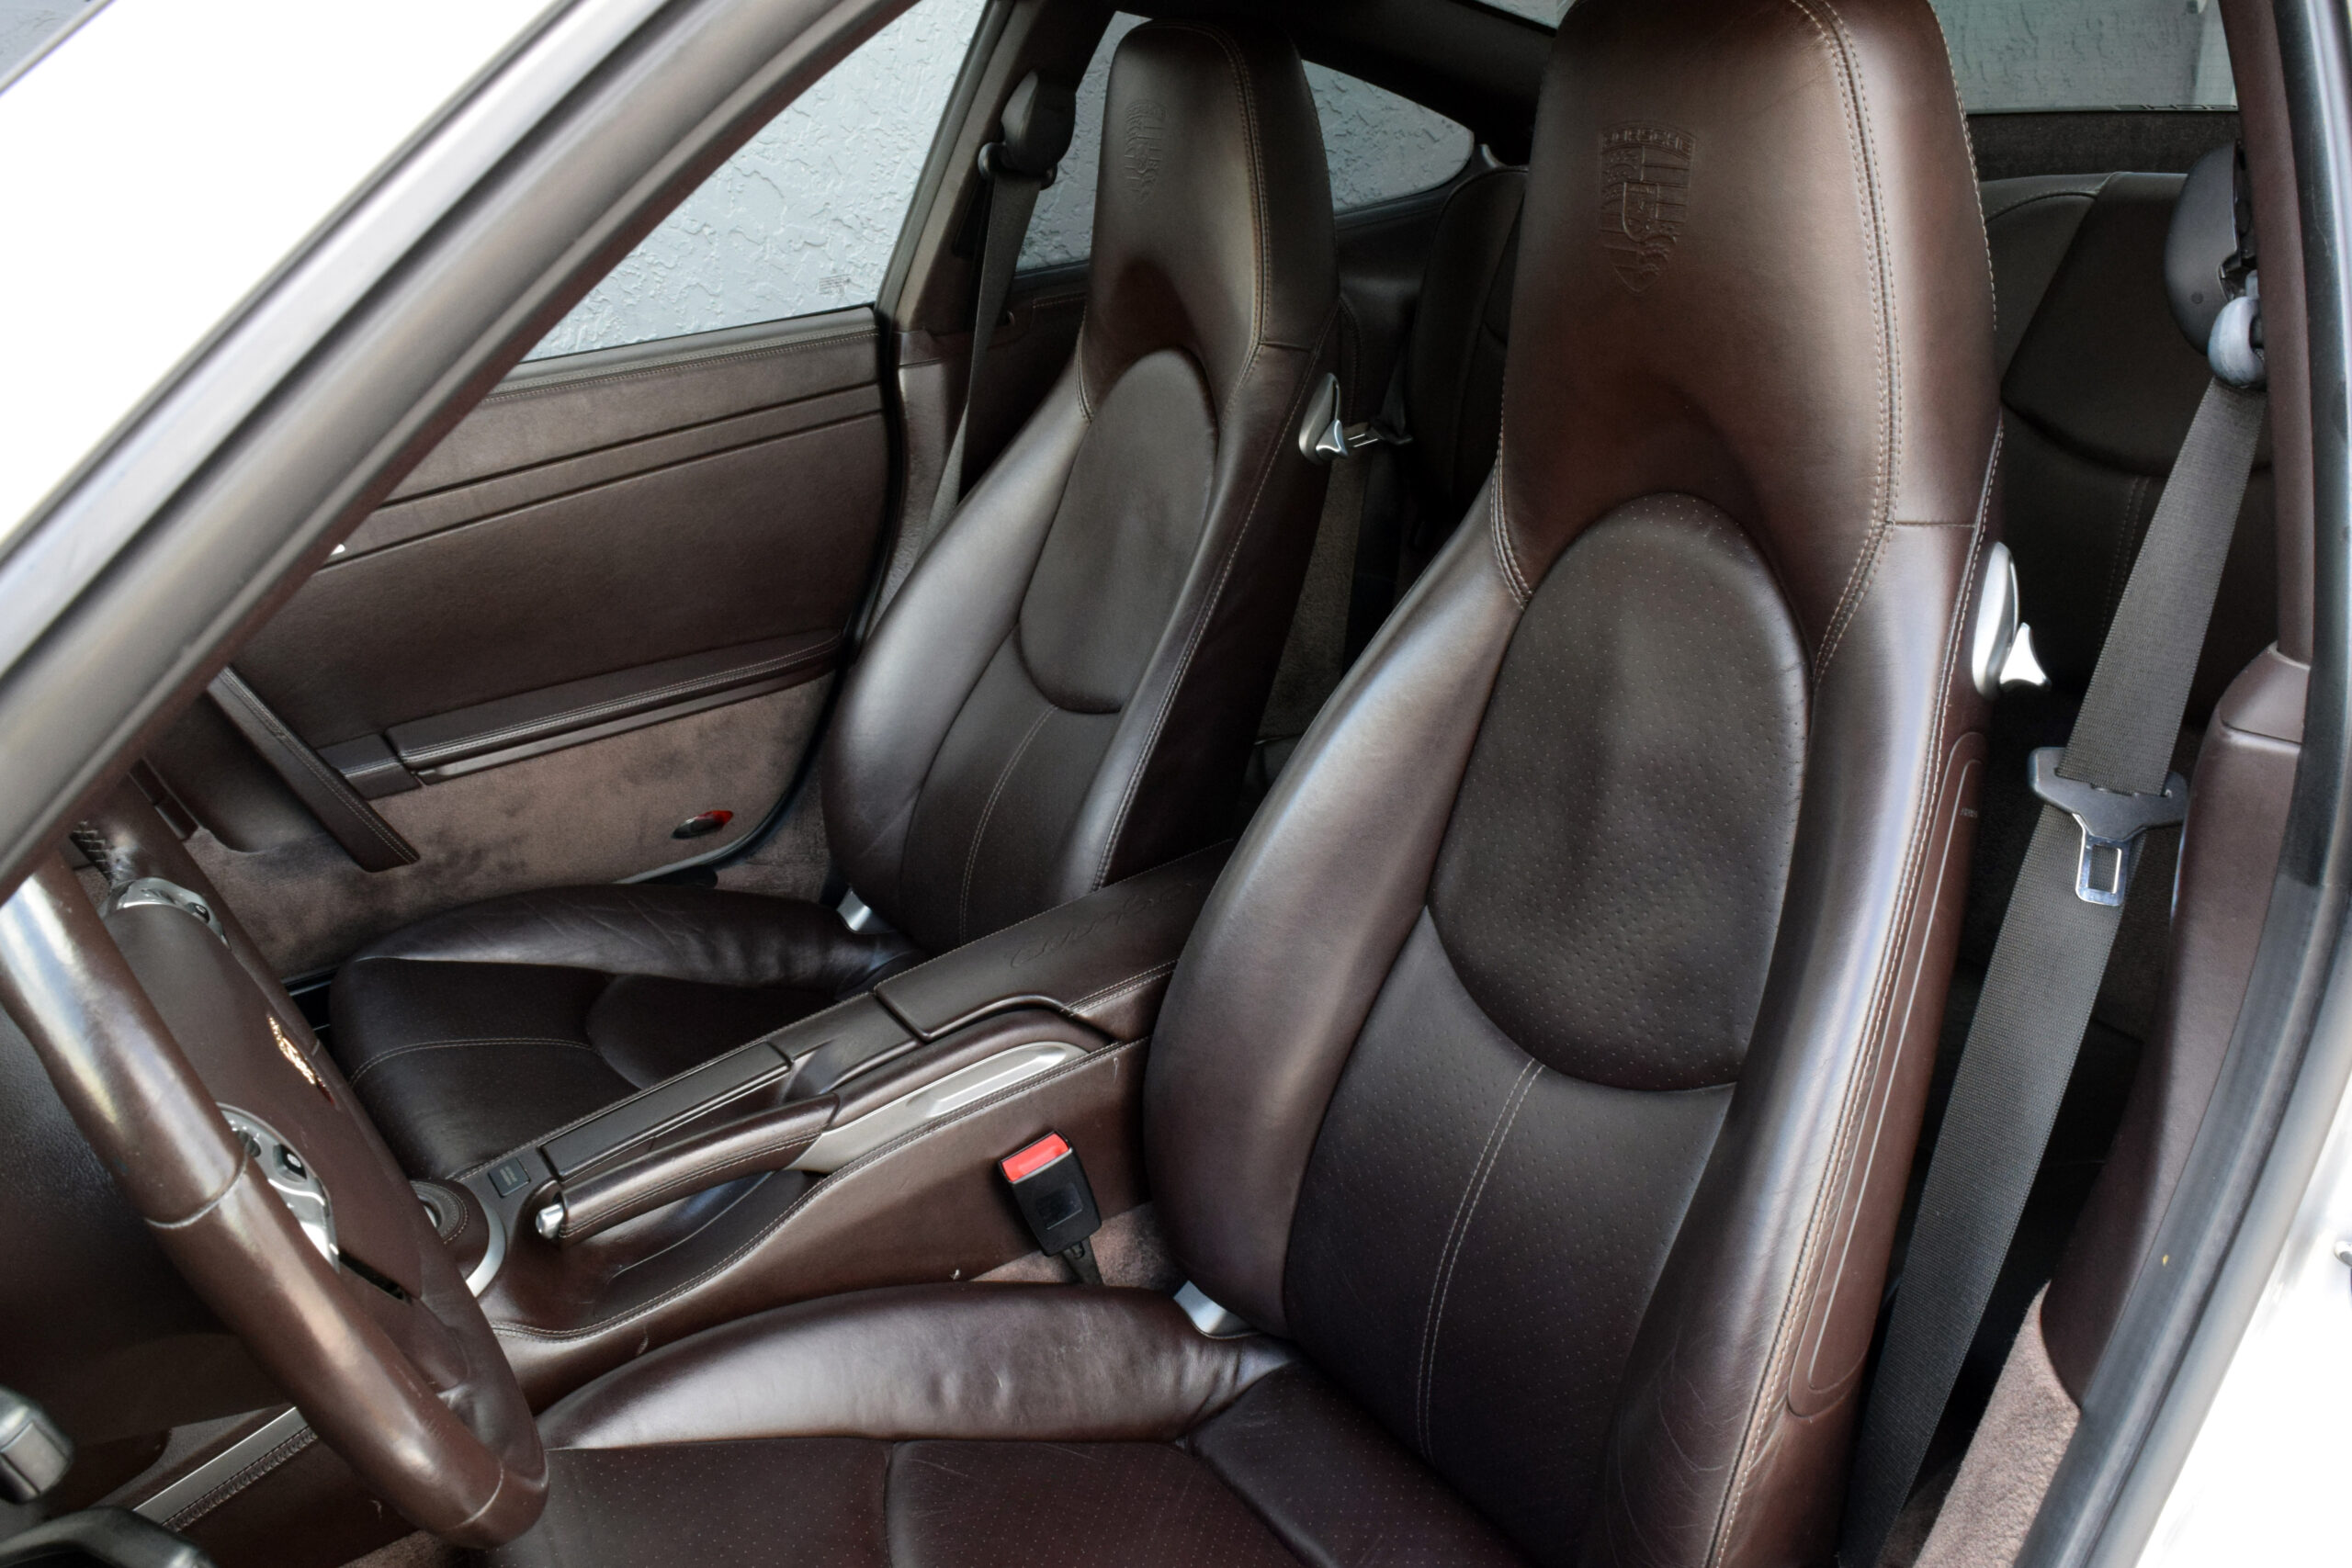 2007 997 Turbo, super low miles, big options list, same owner for 11 years